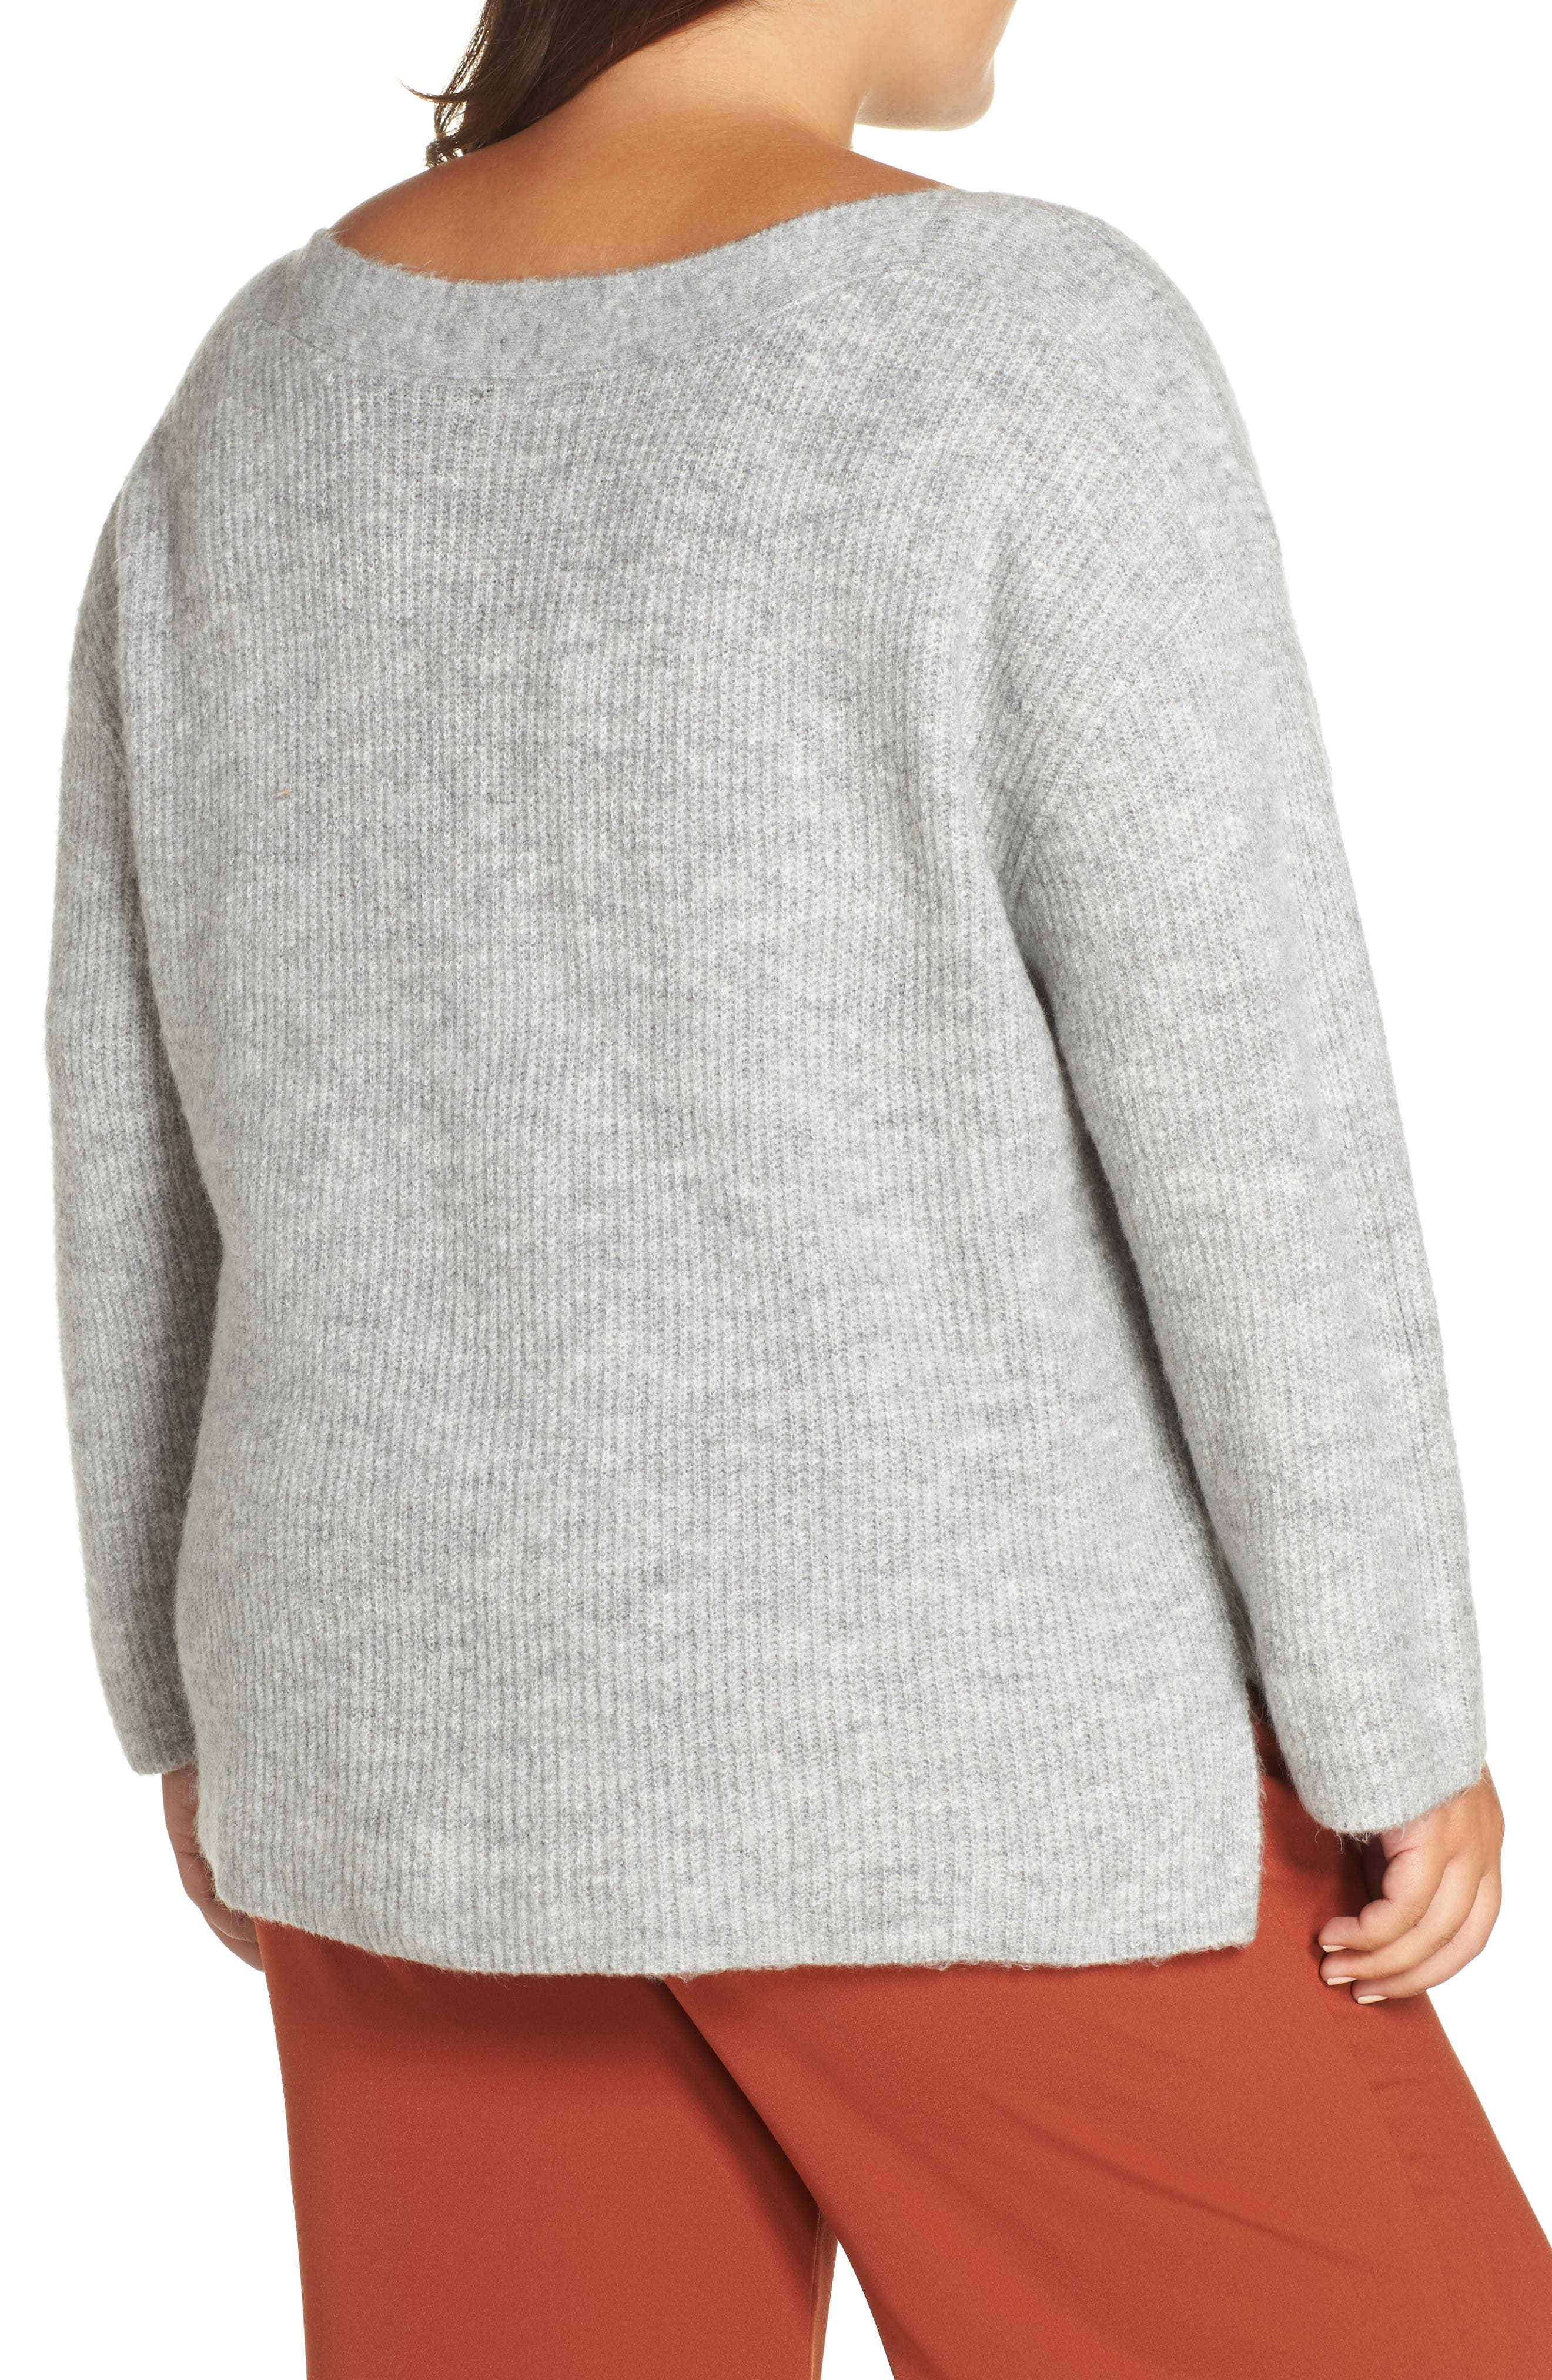 Cozy Femme Pullover Sweater,                             Alternate thumbnail 2, color,                             031